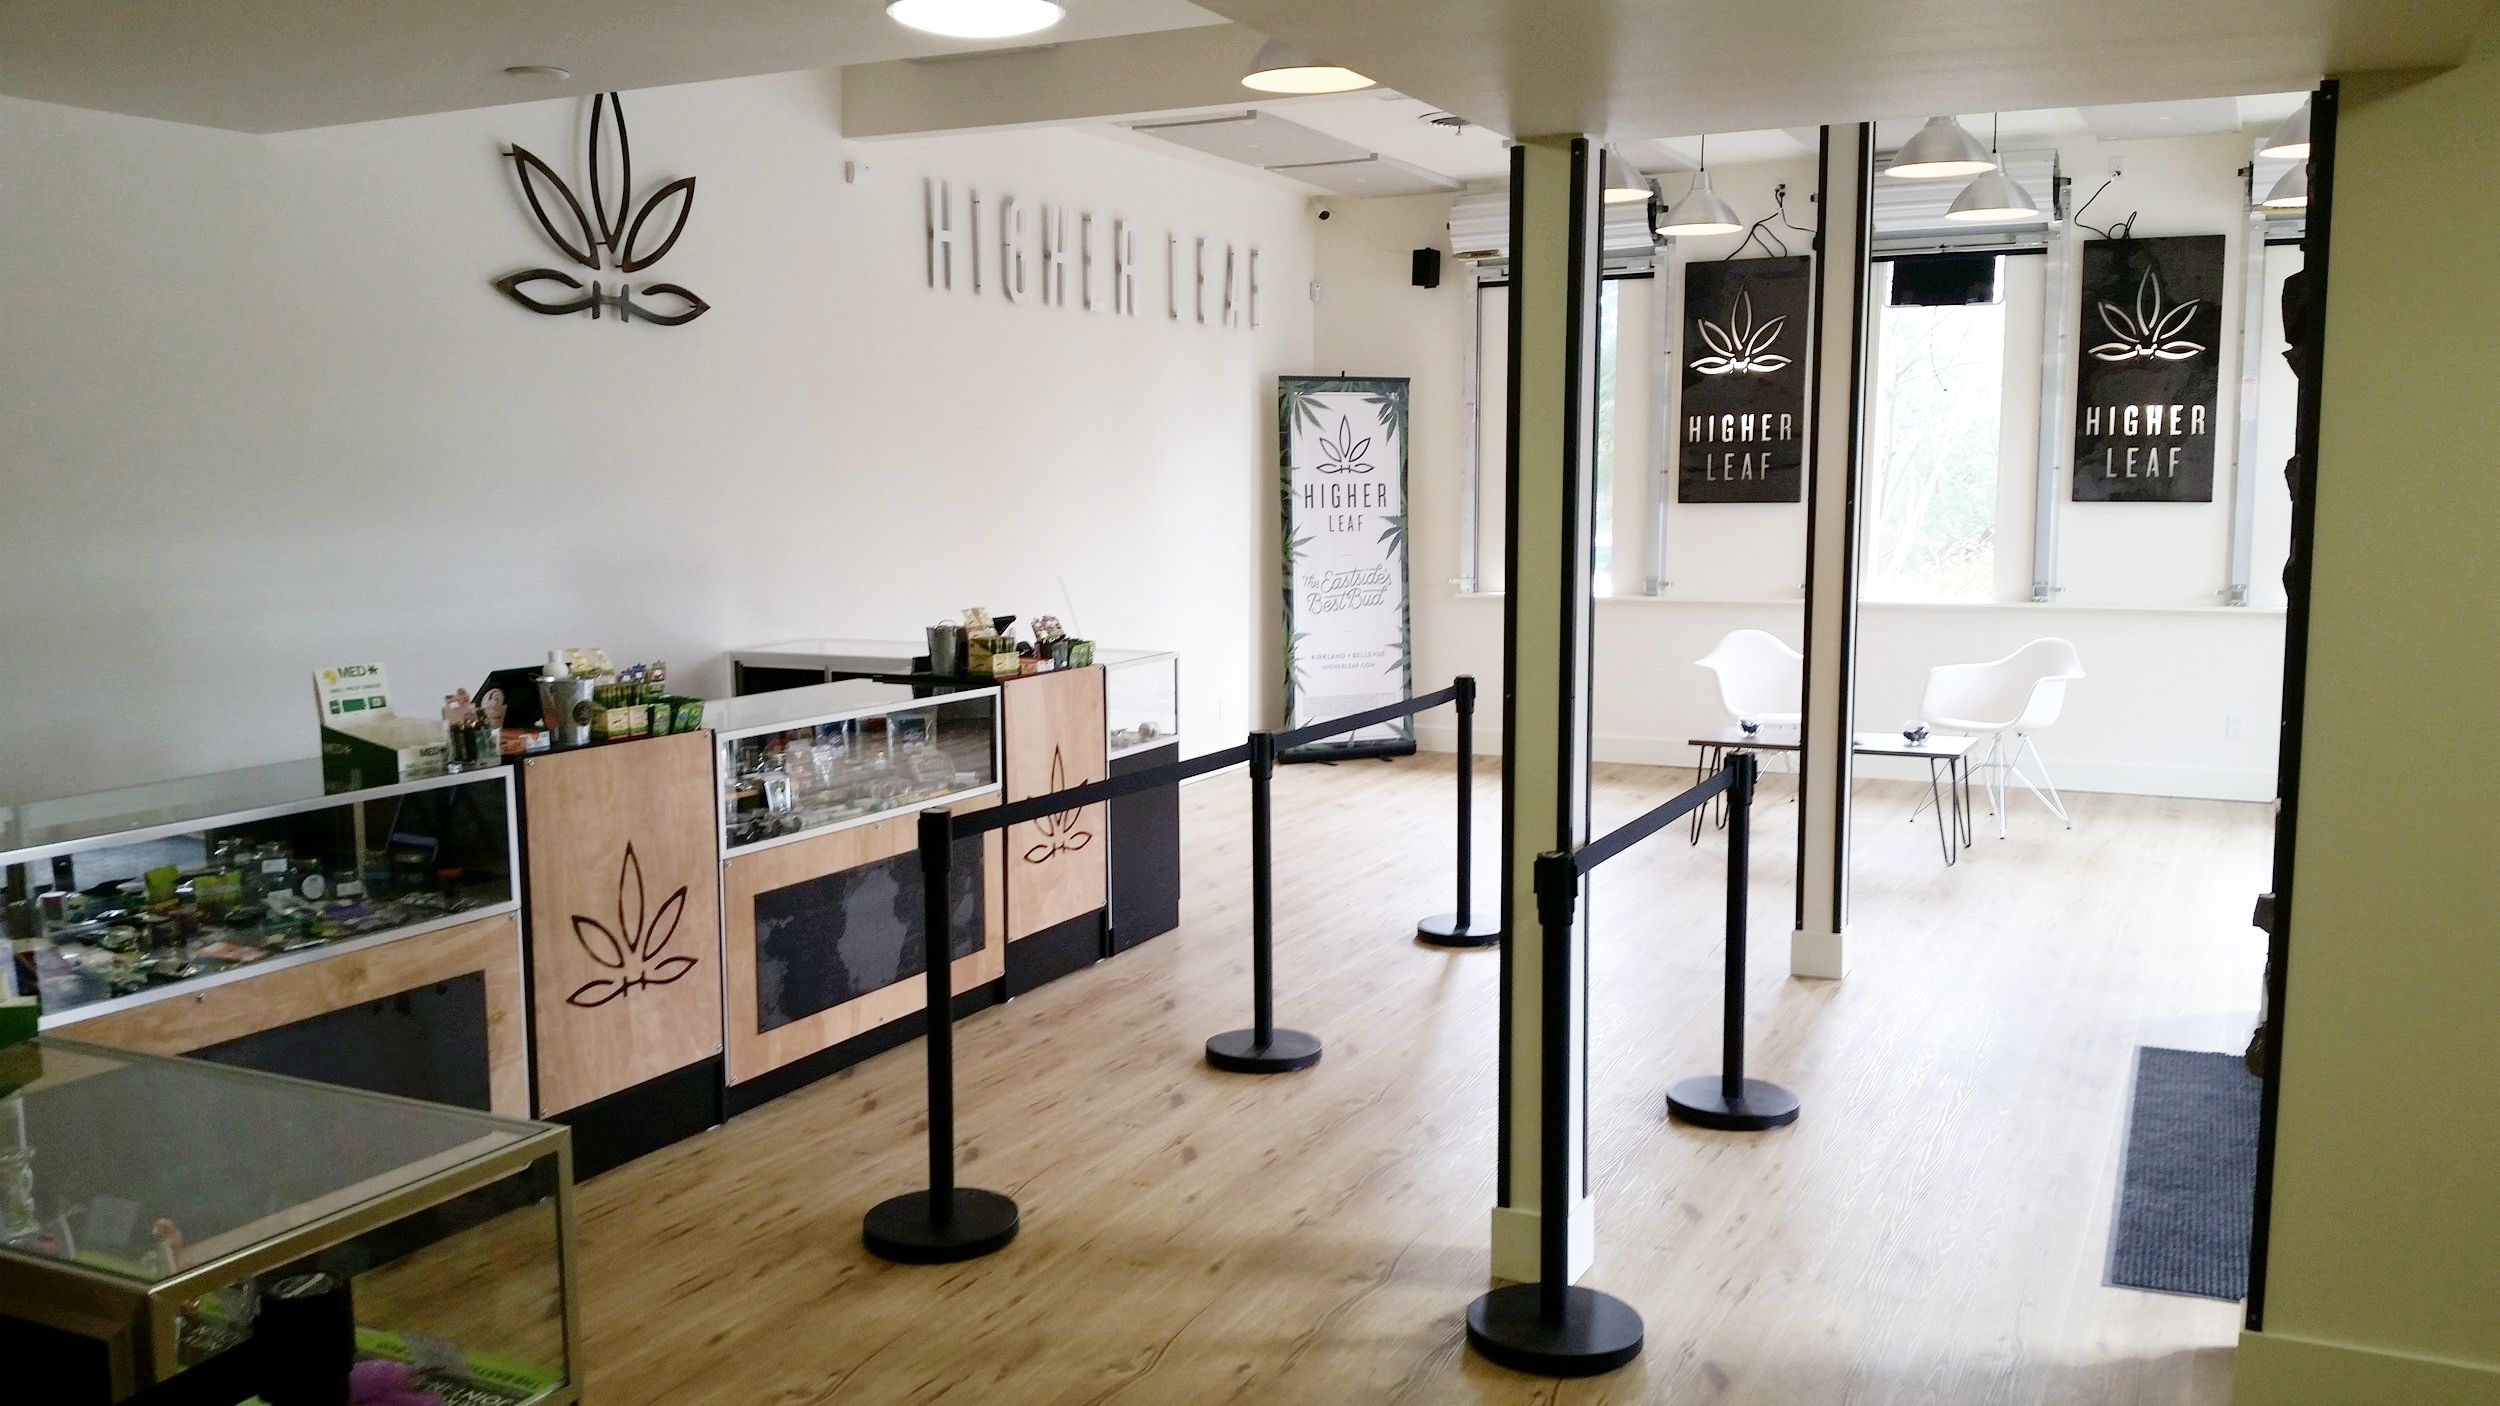 Say hello to The Eastside's Best Bud, now in Bellevue! Higher Leaf's 2nd location has many of the same vendors and strains of marijuana as our Kirkland location. Let us know what you're looking for at  www.higherleaf.com/feedback .